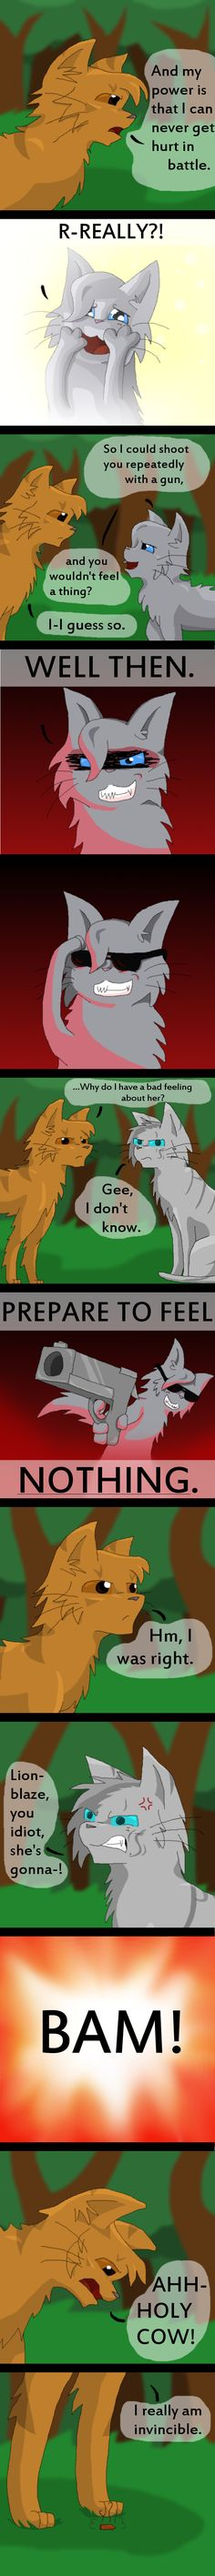 Warrior Cats- She's Crazy Dude (REAL) by whatchyagonnado.deviantart.com on @deviantART